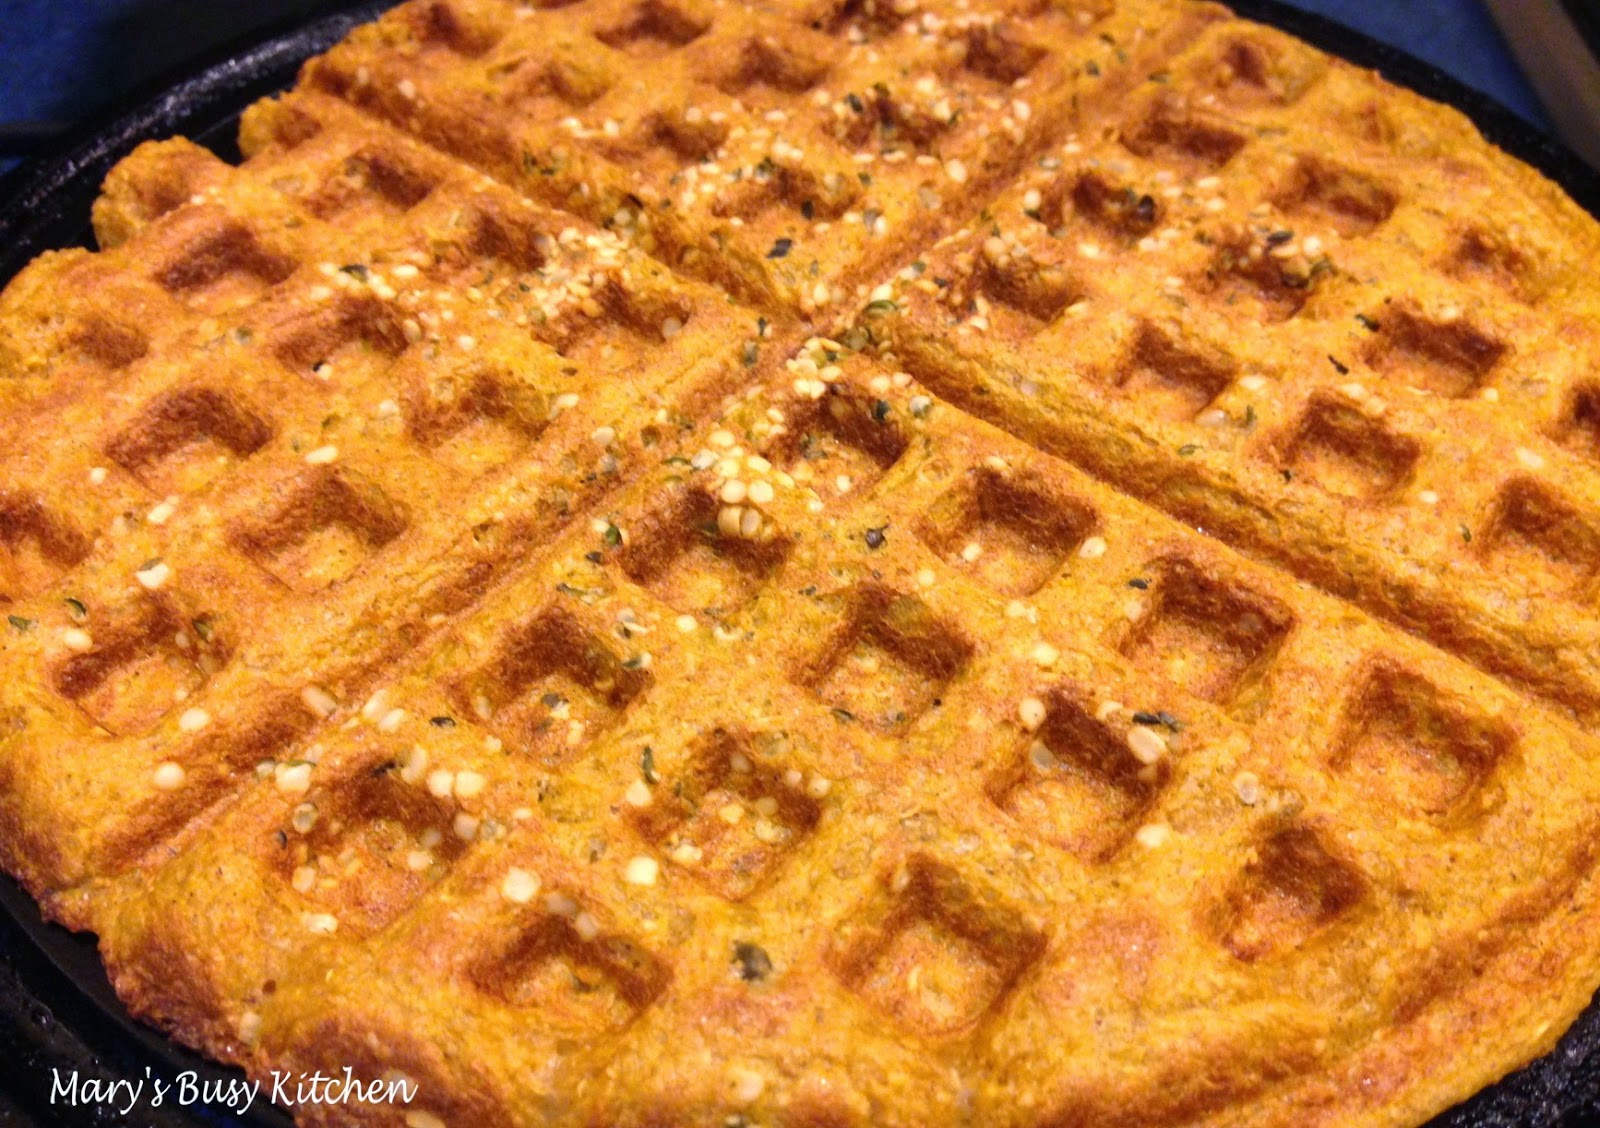 ... : Gluten Free Banana, Pumpkin & Oat Waffles - no added sugar or fat